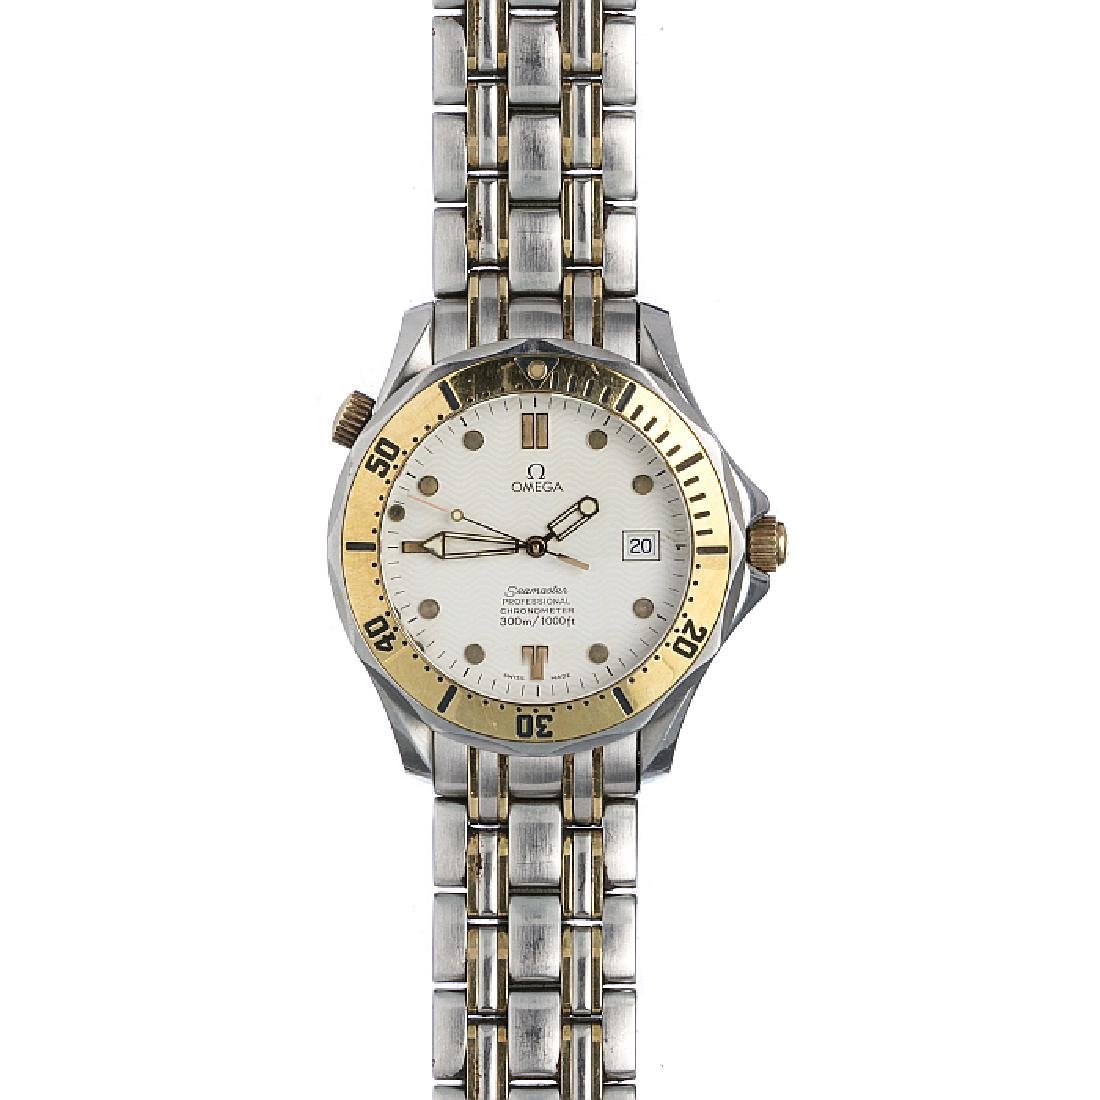 OMEGA - Seamaster Professional watch for men